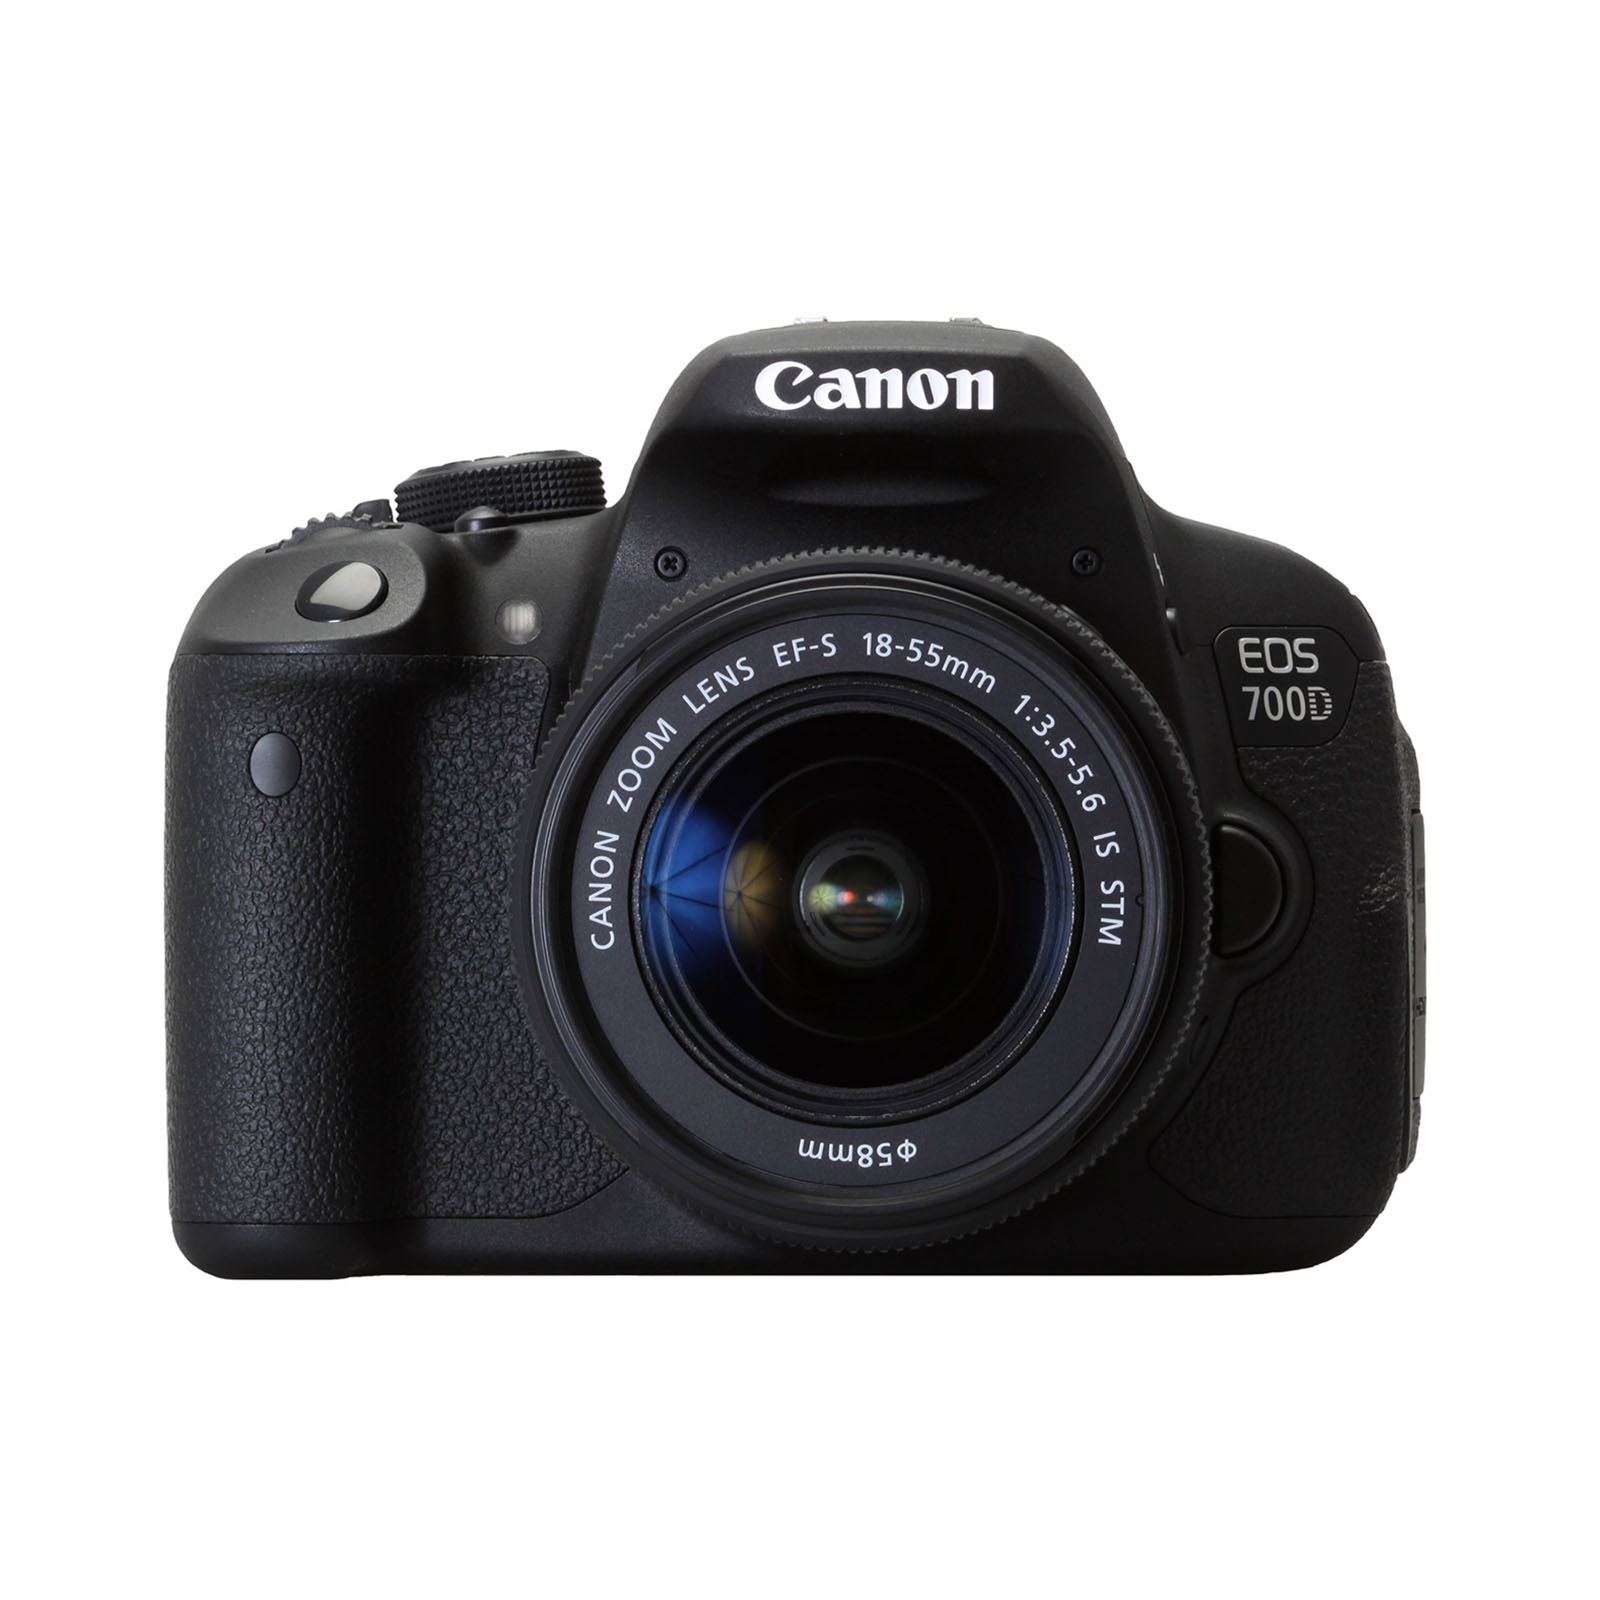 Canon-EOS-700D-kit-18-55mm-f3.5-5.6-IS-STM-001_1484259078_446